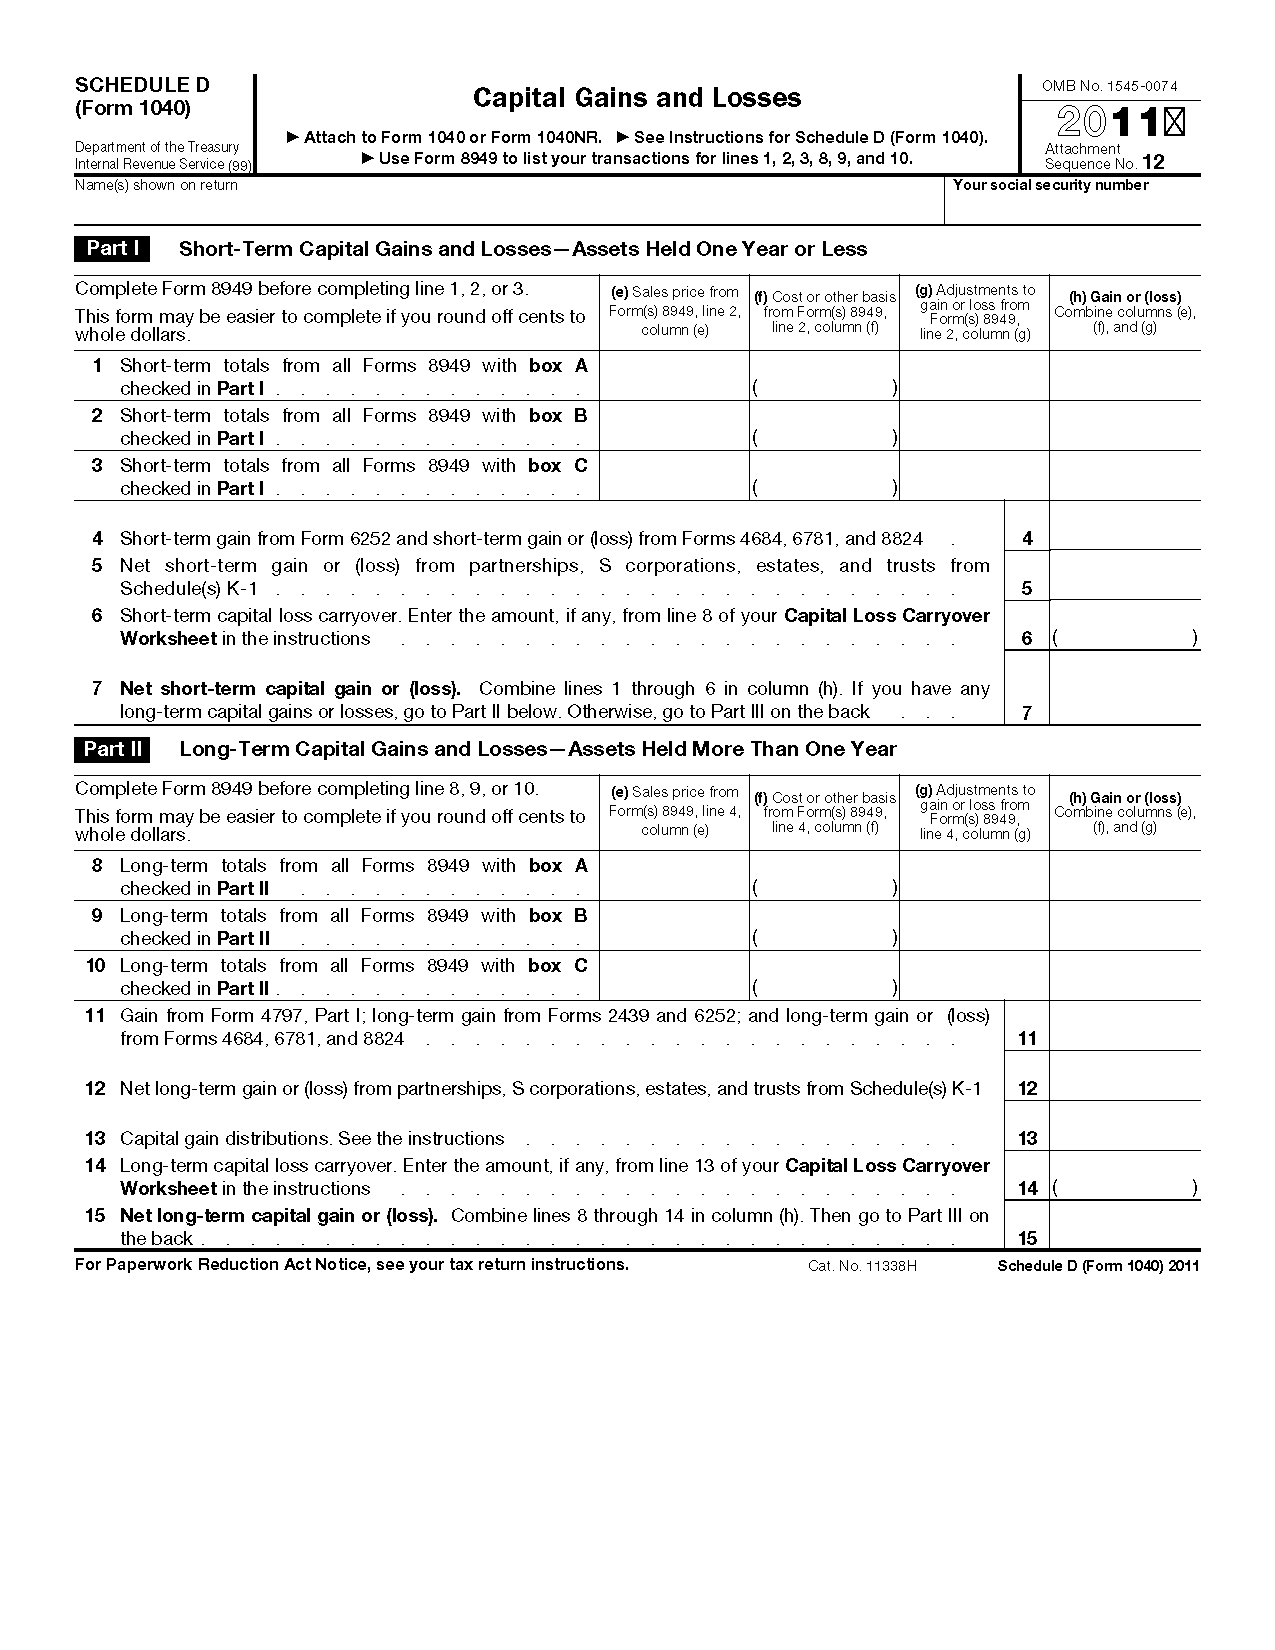 Irs Form Schedule D Worksheet